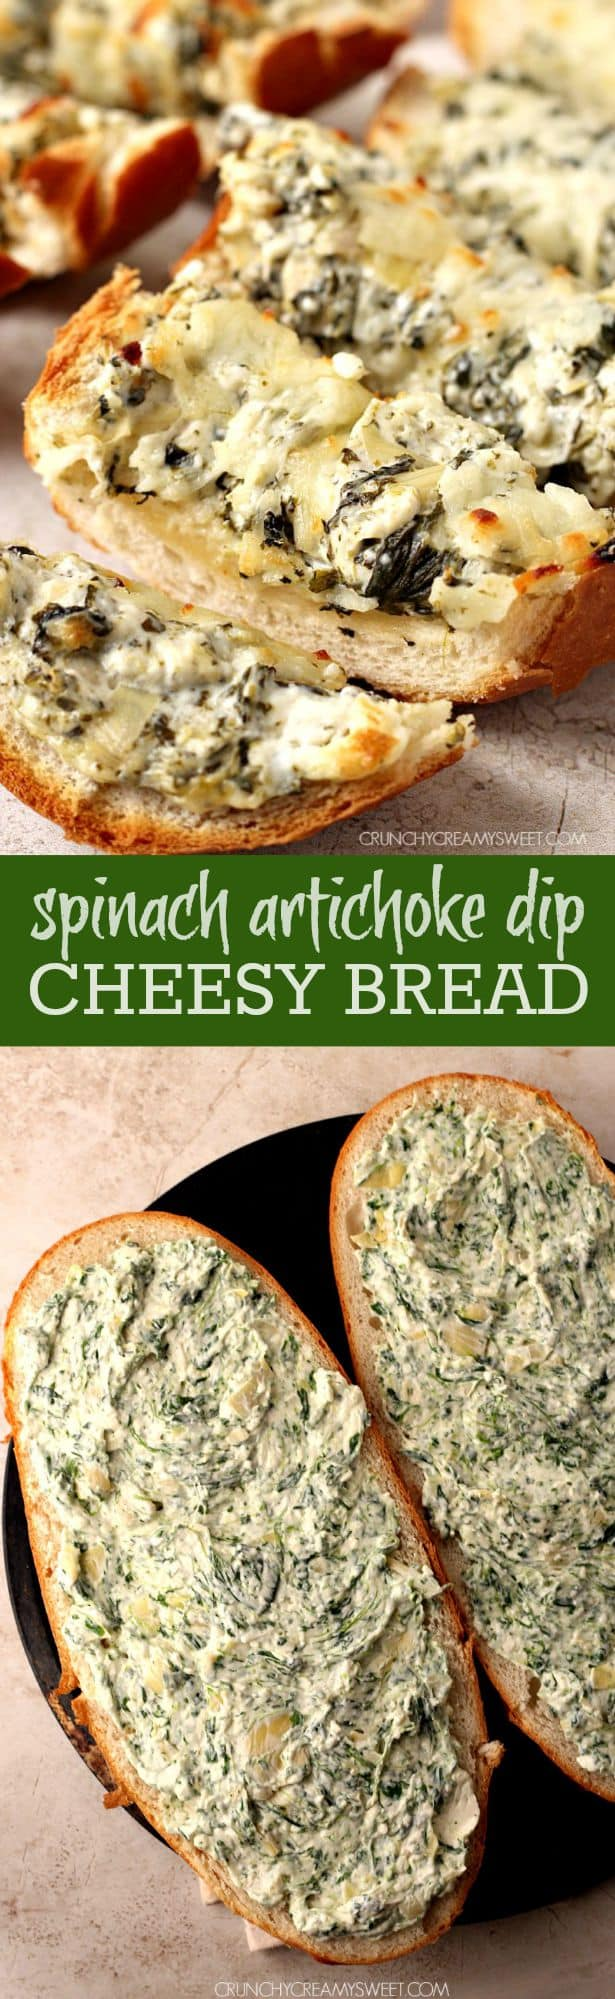 spinach artichoke dip cheesy bread long Spinach Artichoke Dip Cheesy Bread